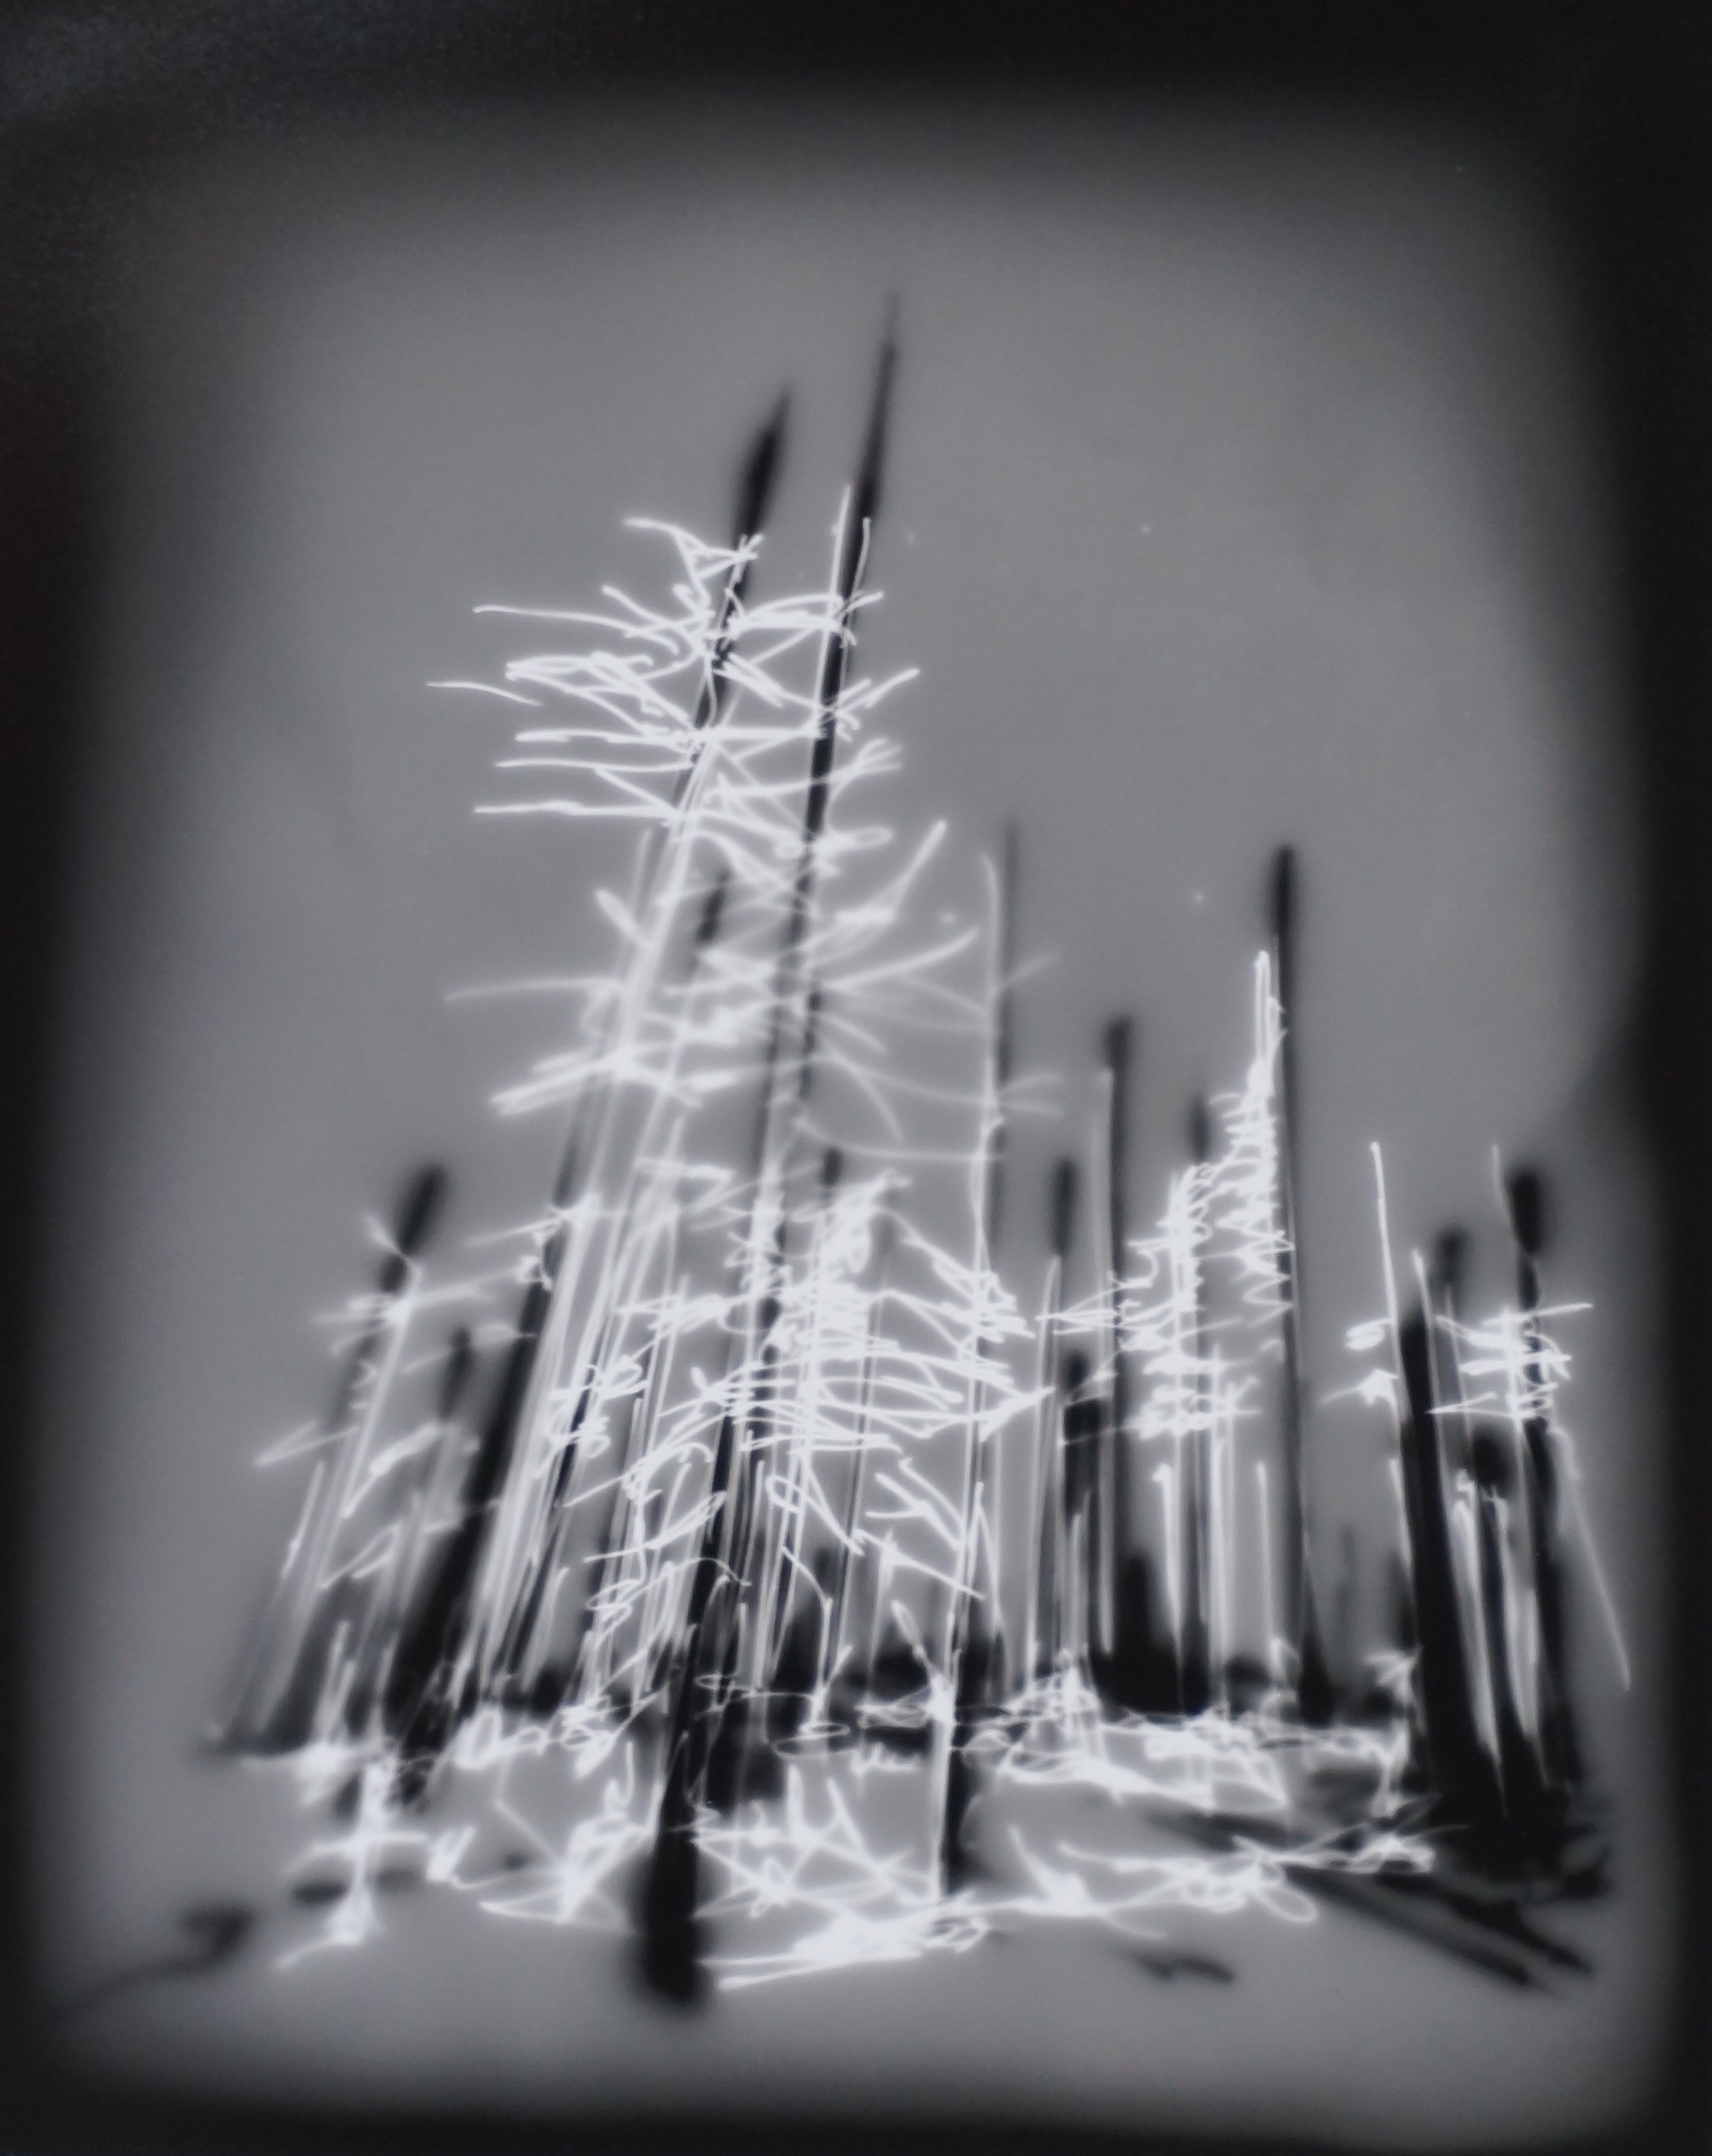 Helen Dennis   Trees, Oregon #1   2013  Photographic drawing  Signed by the artist,  verso   Image/sheet: 10 x 8 inches  Framed: 14 x 11 inches